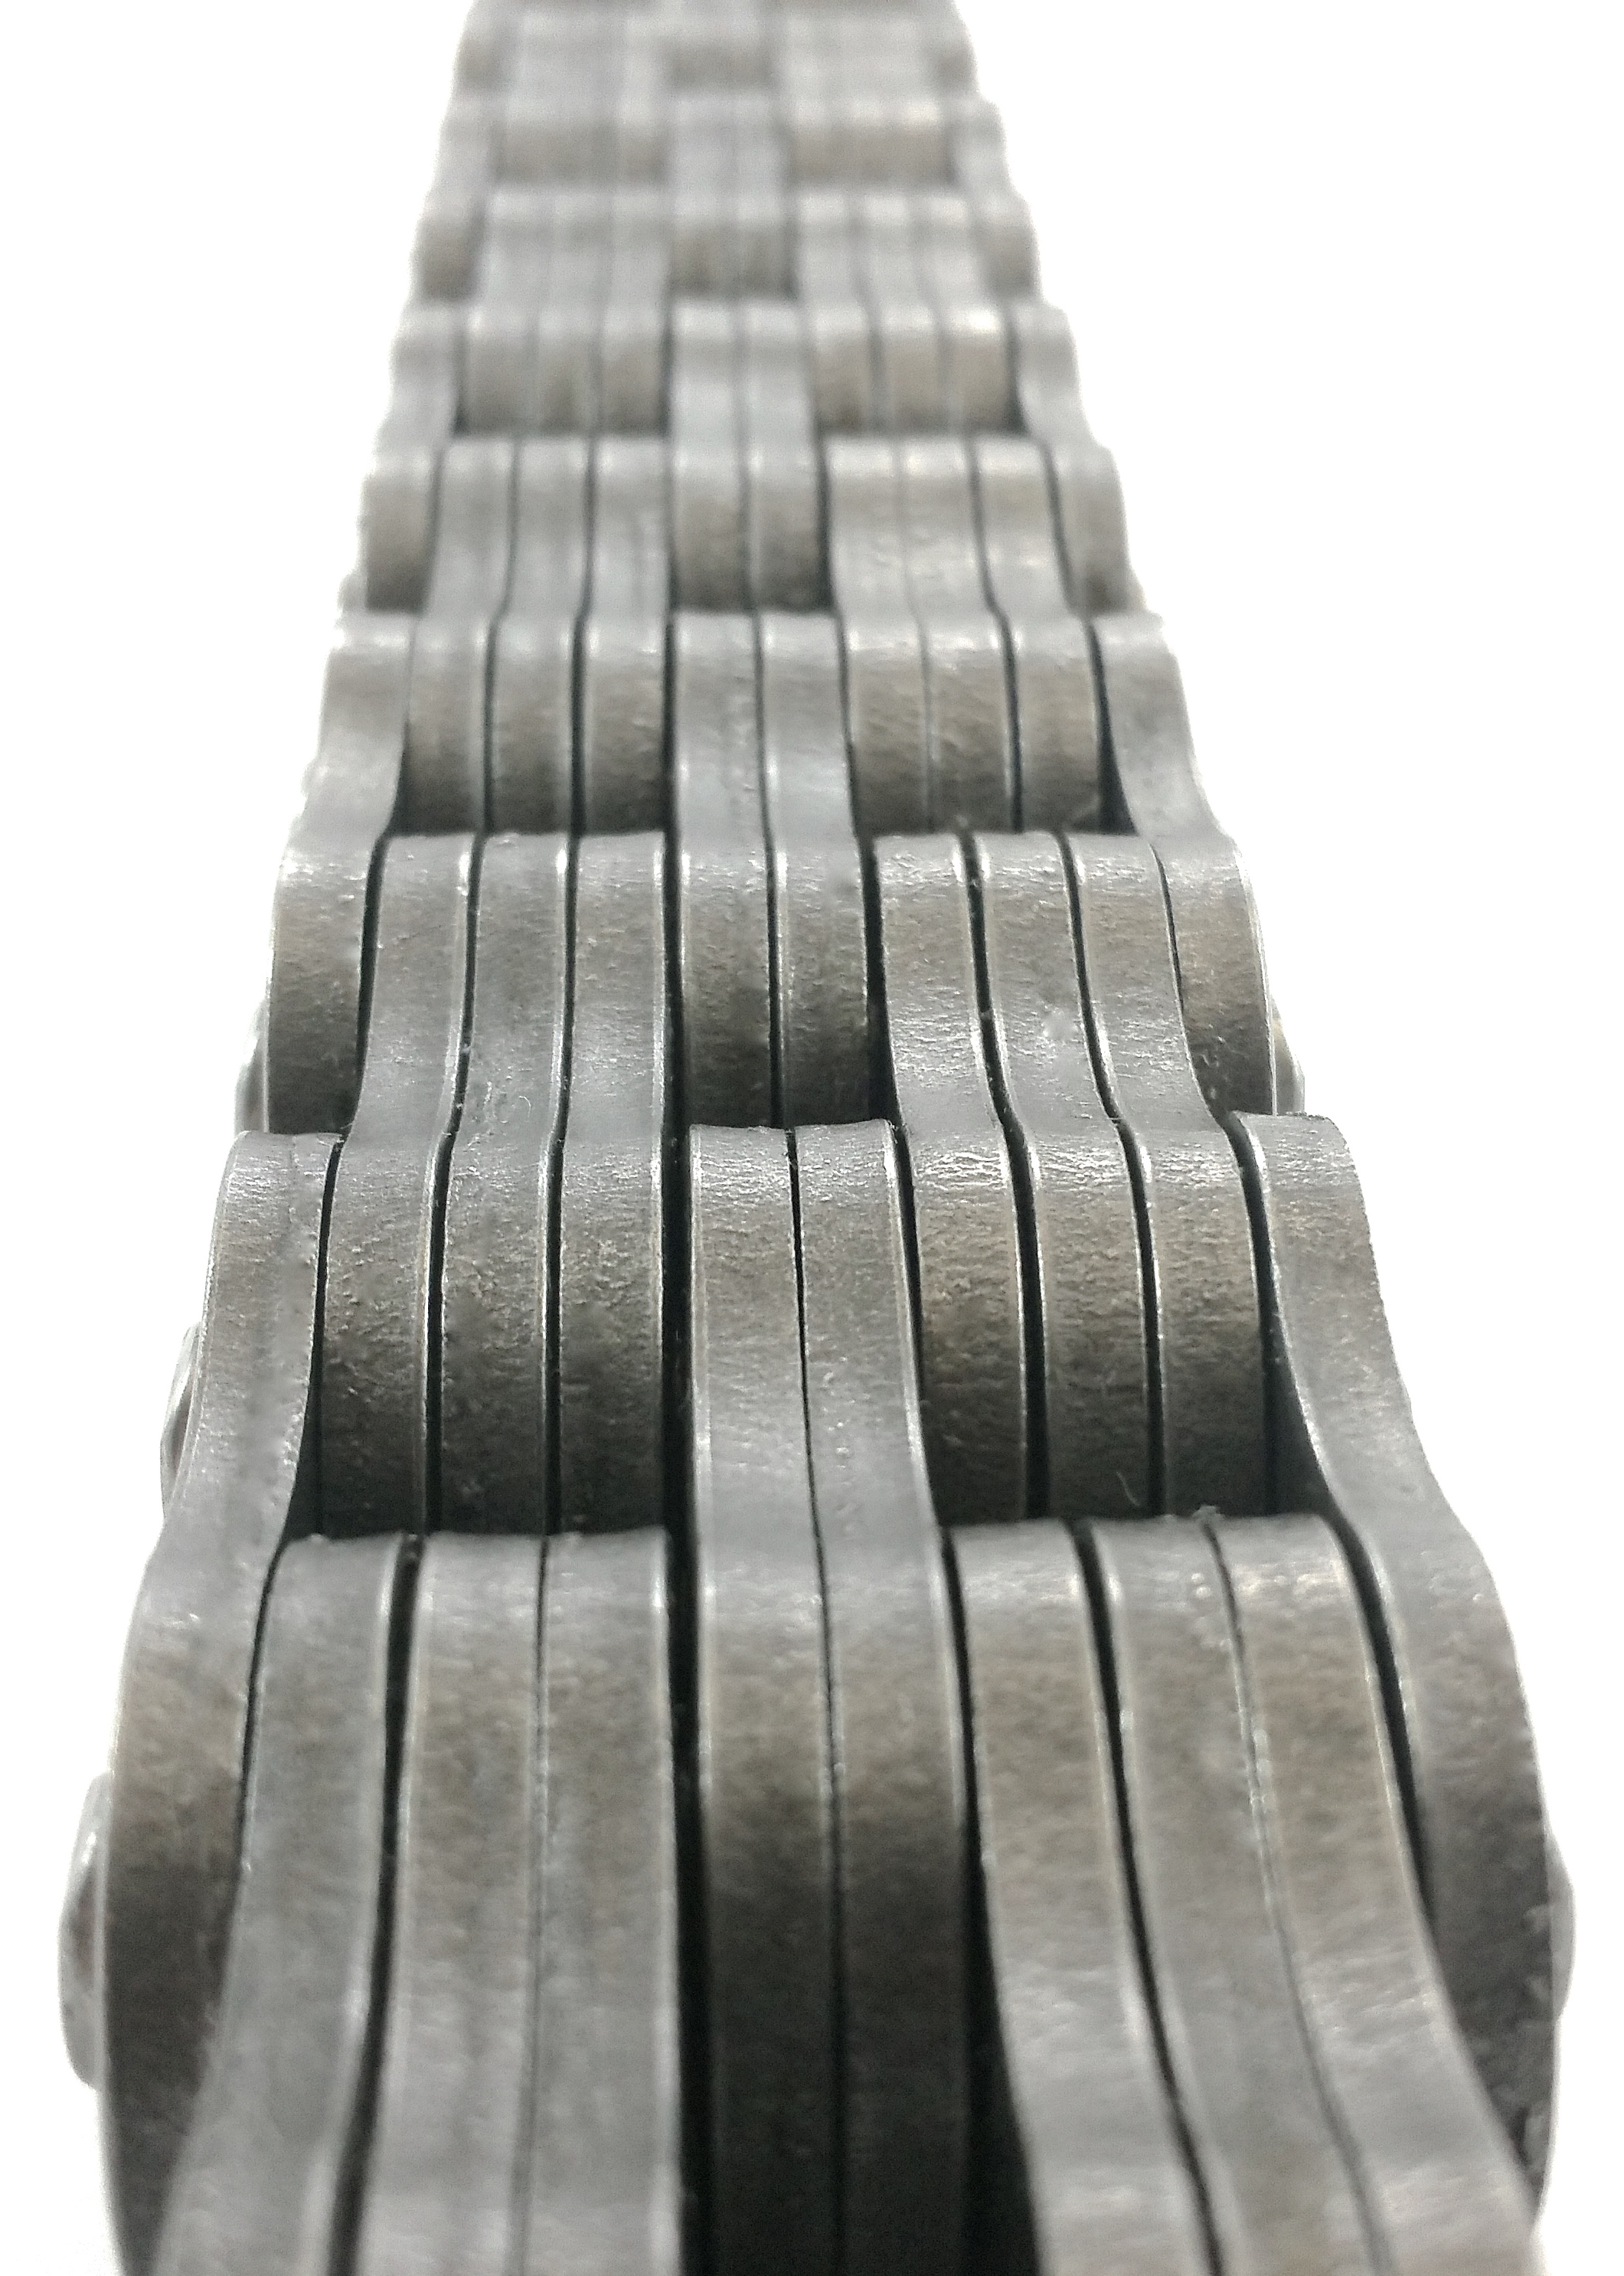 chains chain detail high quality transmission leaf products